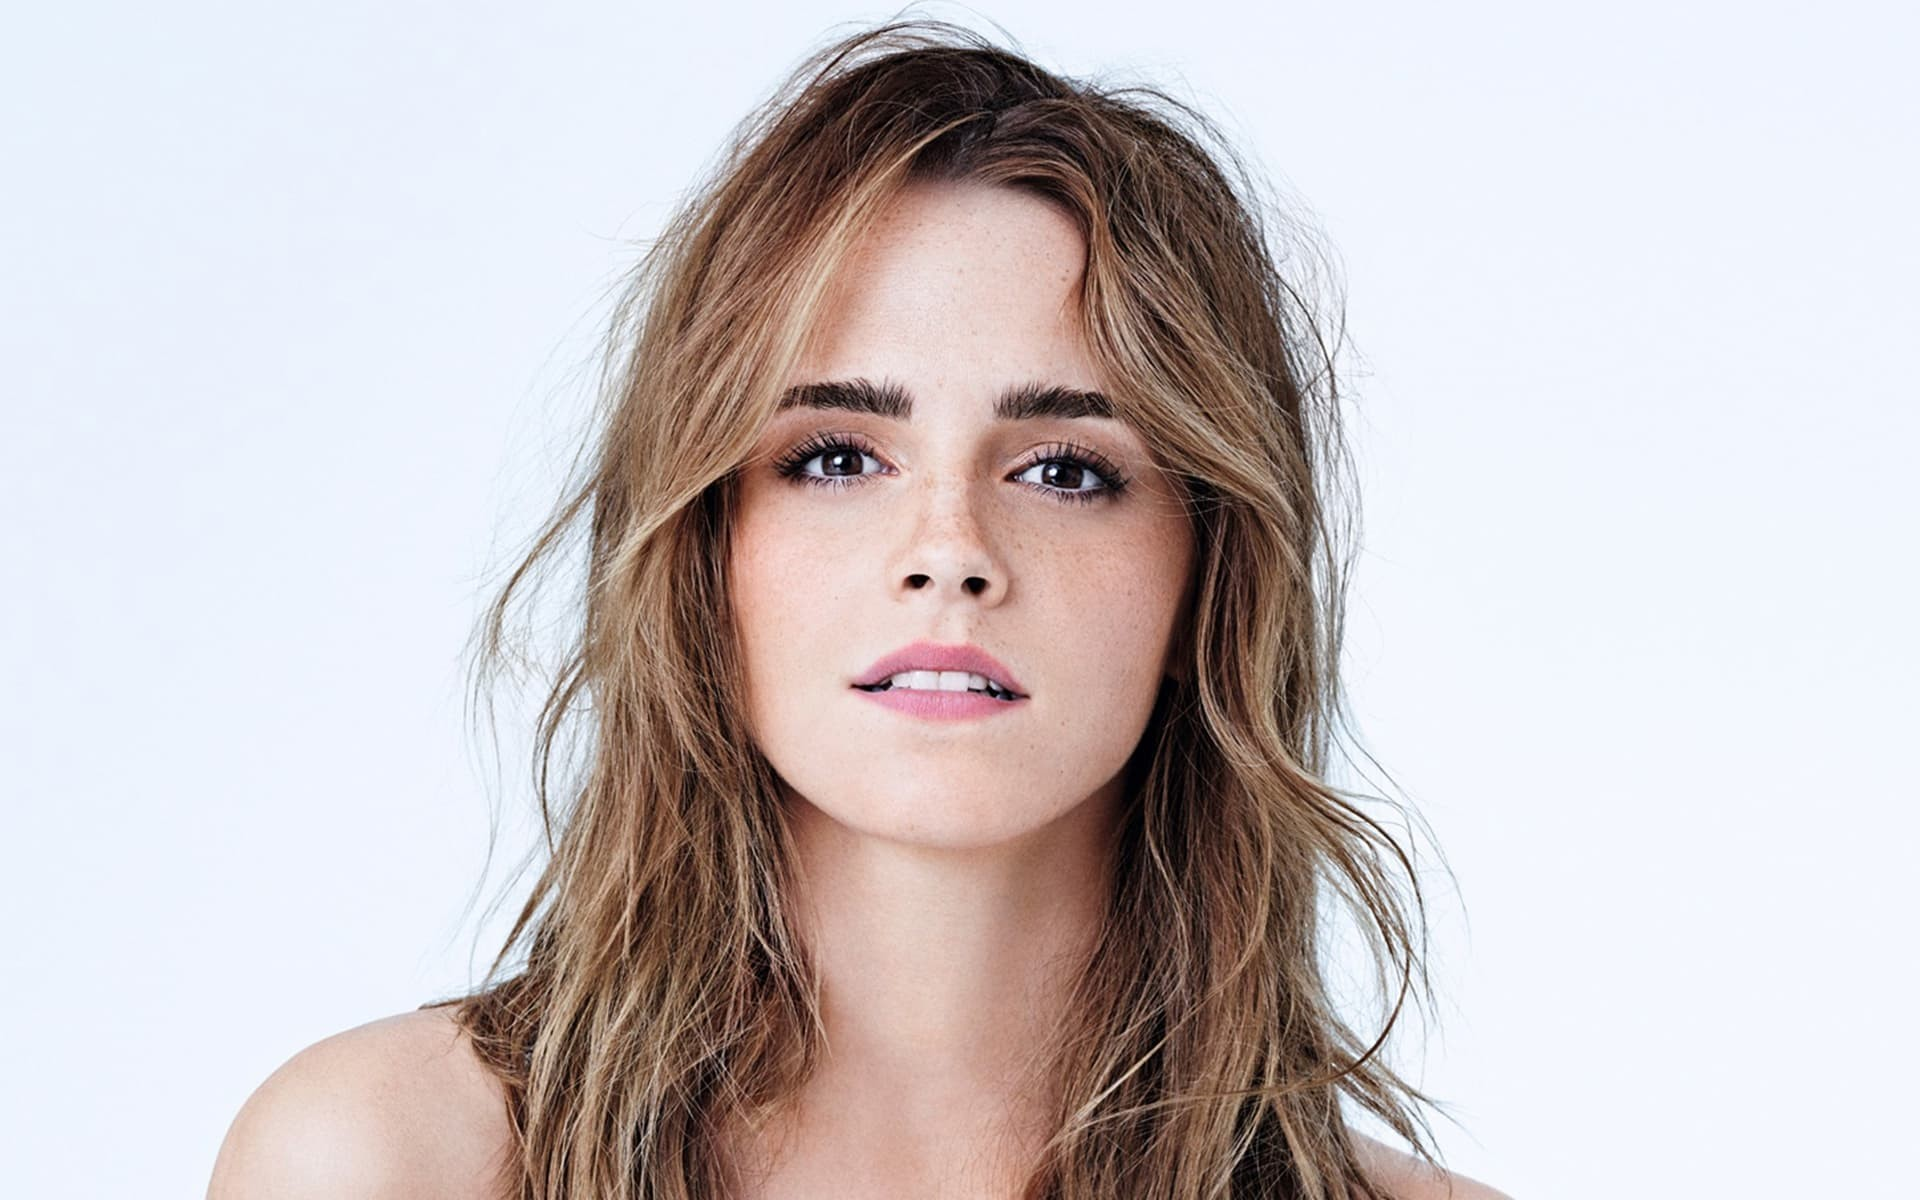 emma watson wallpaper ·① download free hd wallpapers of british